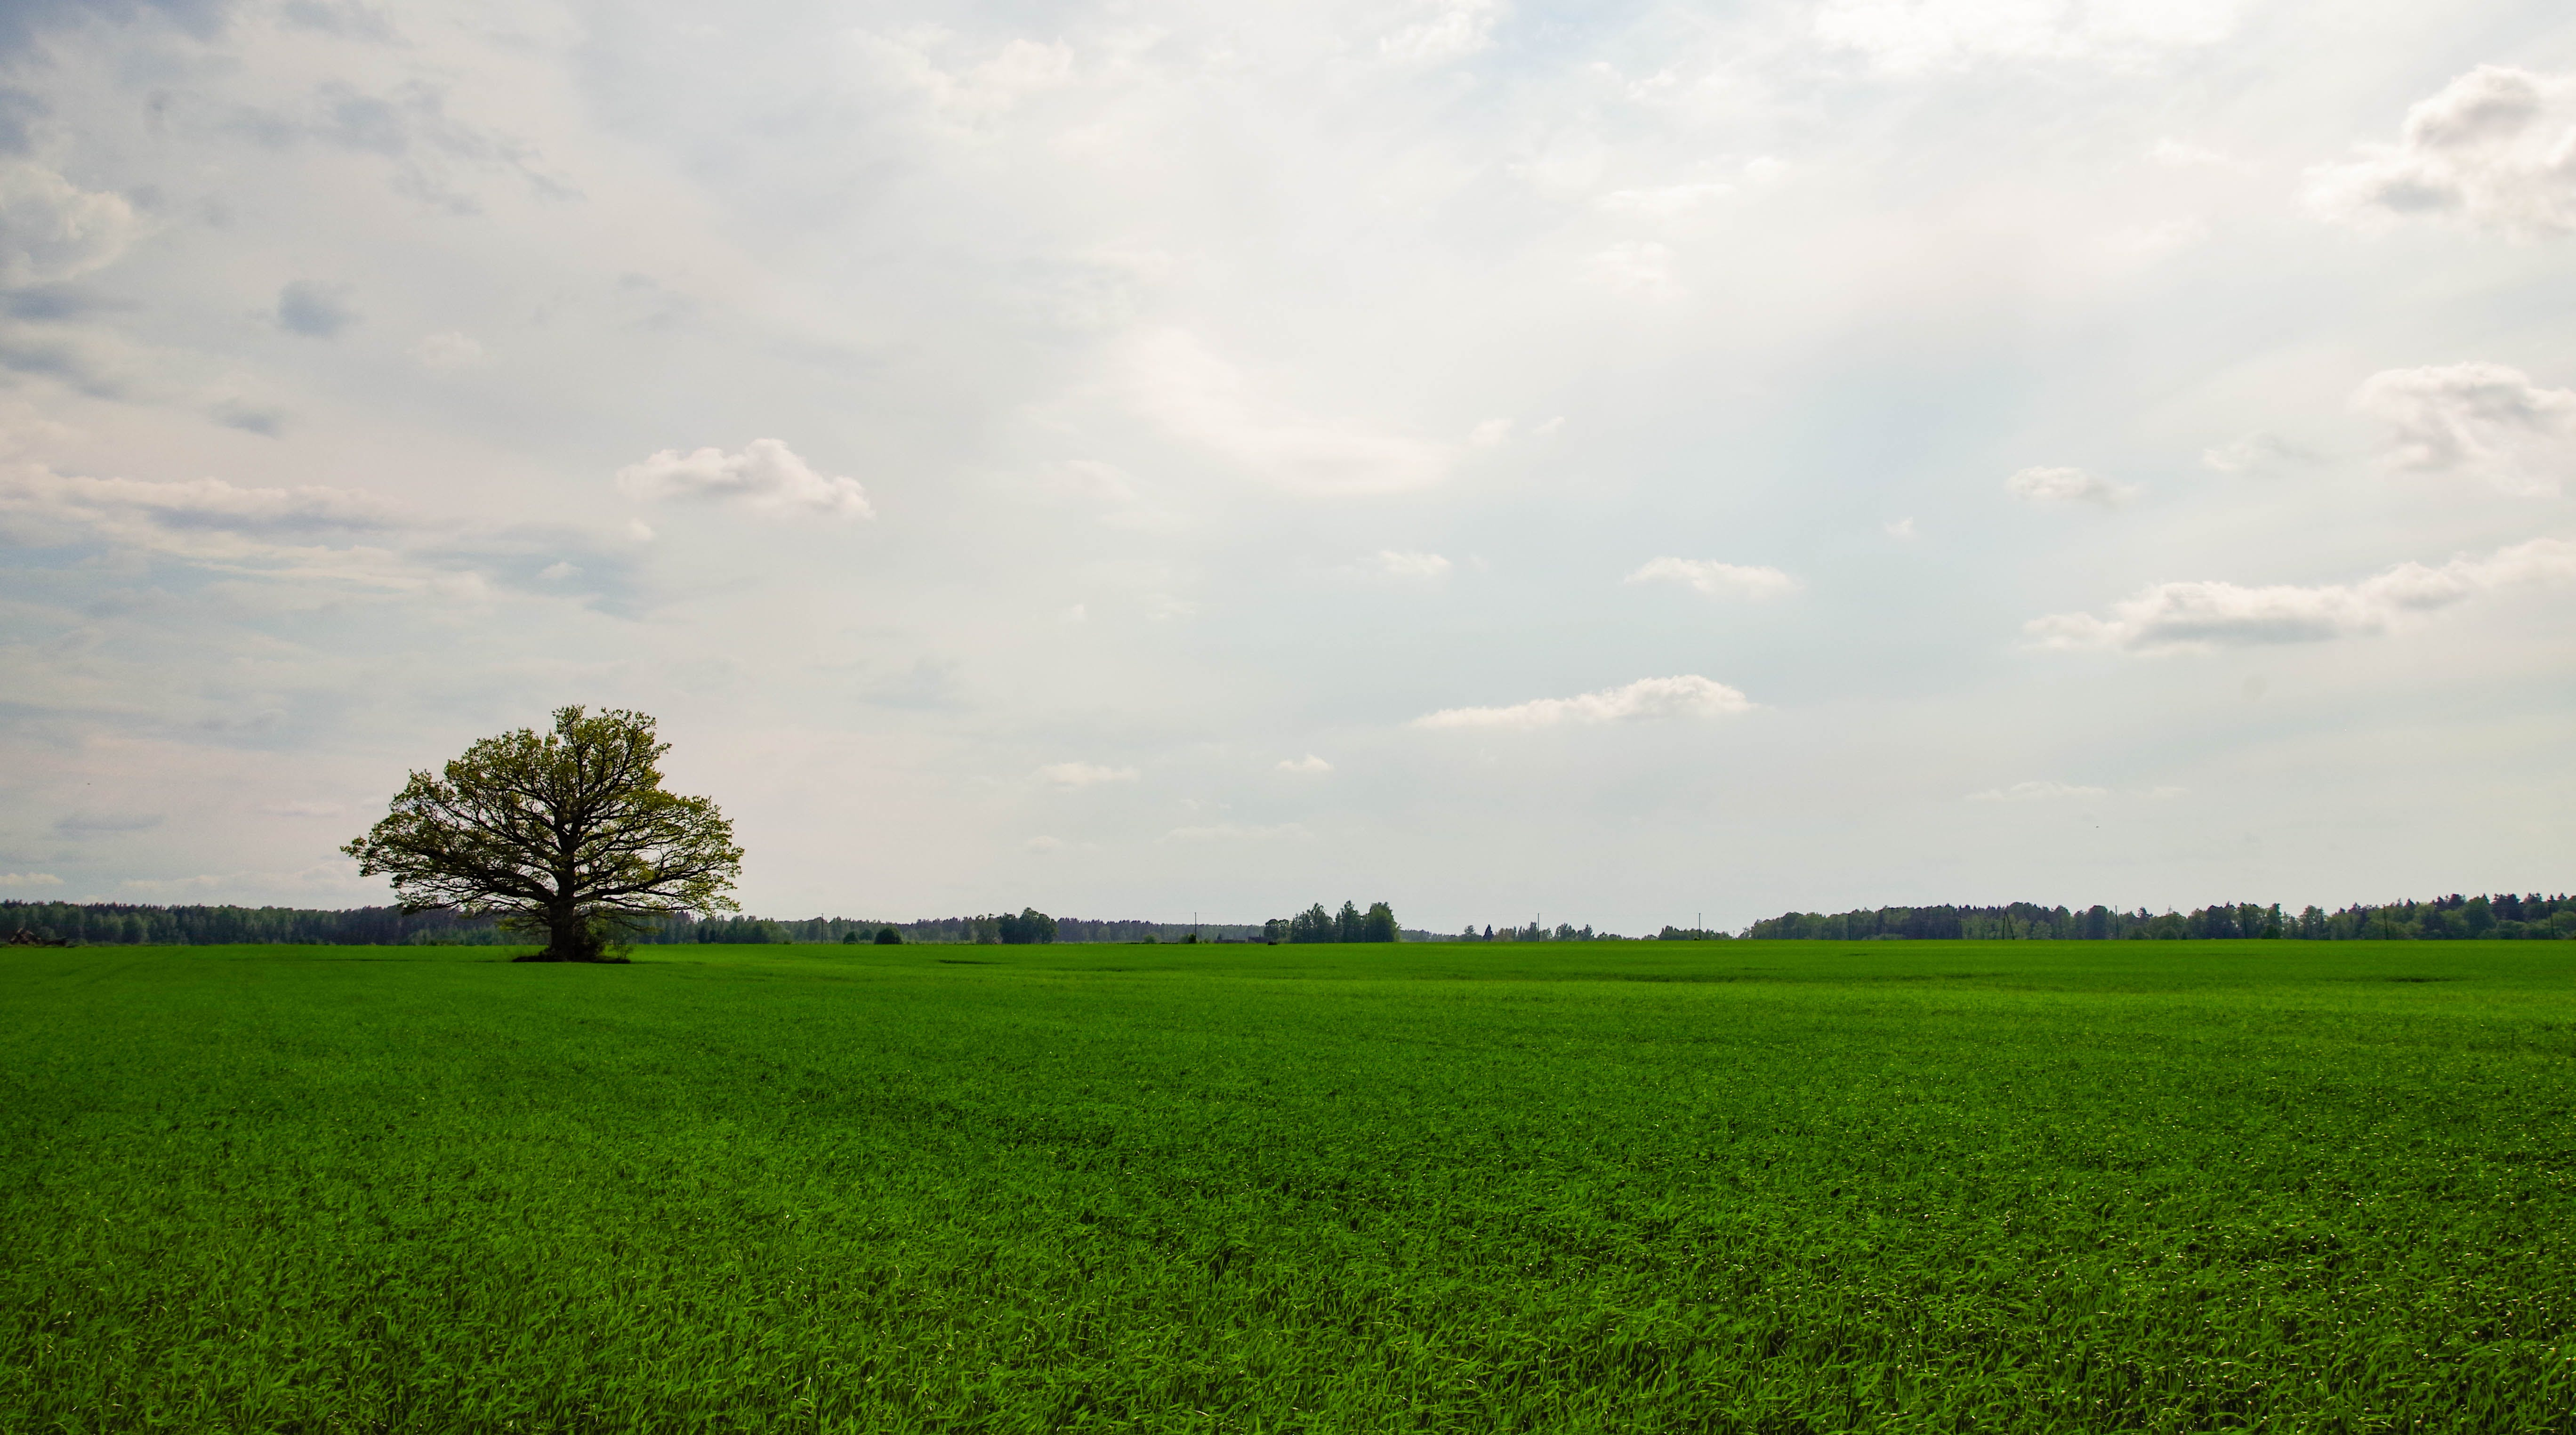 Photography of Tree in a Field